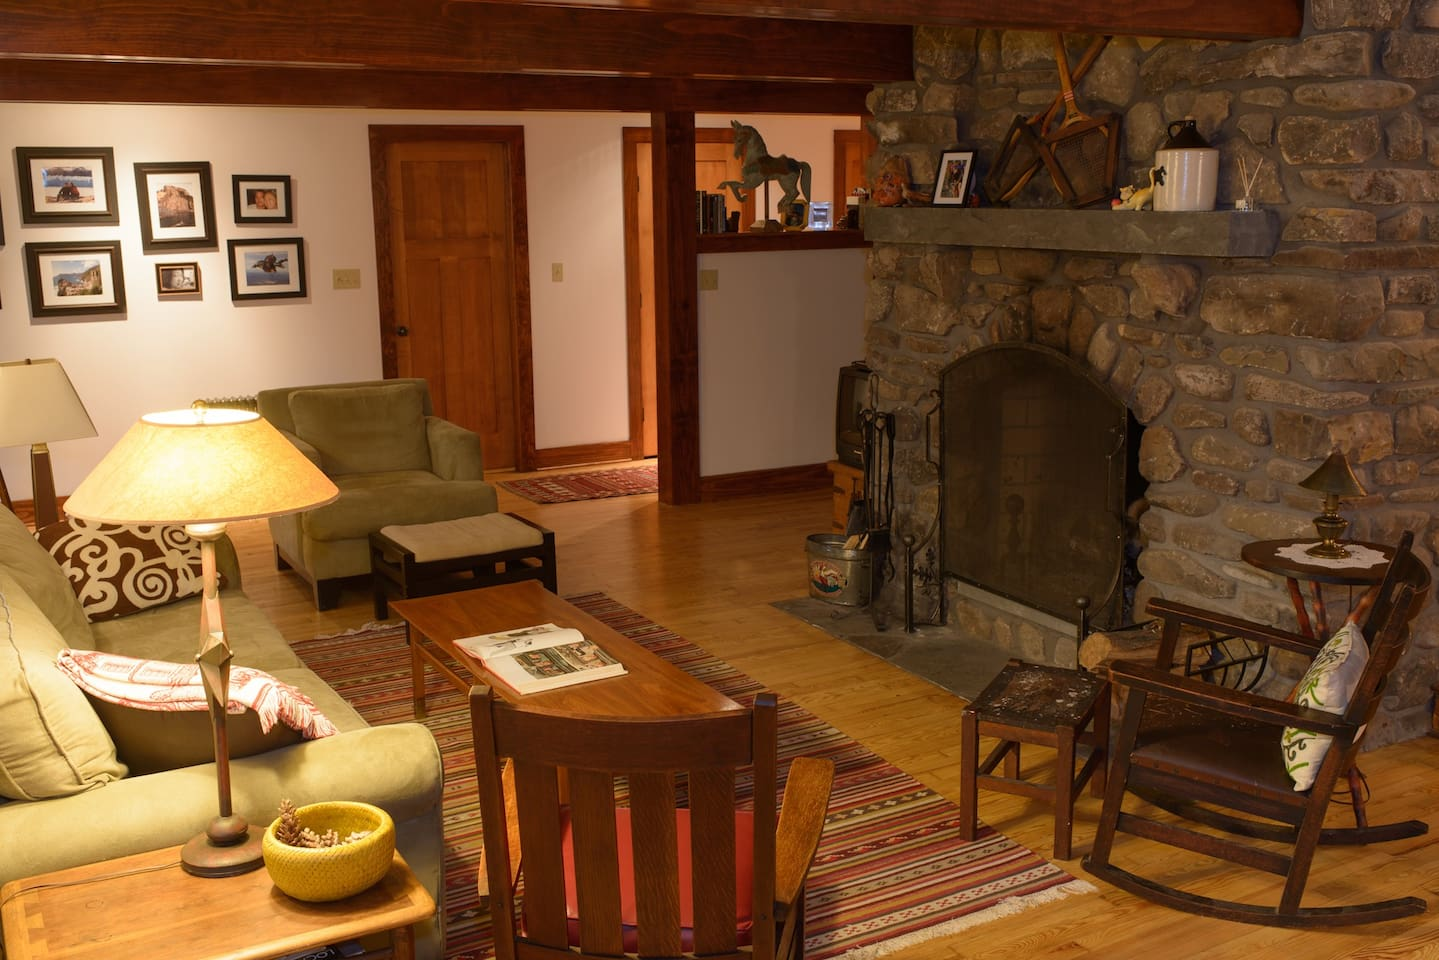 Cozy Couch, Antique Rocking Chairs, & Massive Fireplace make for an Inviting Living Room